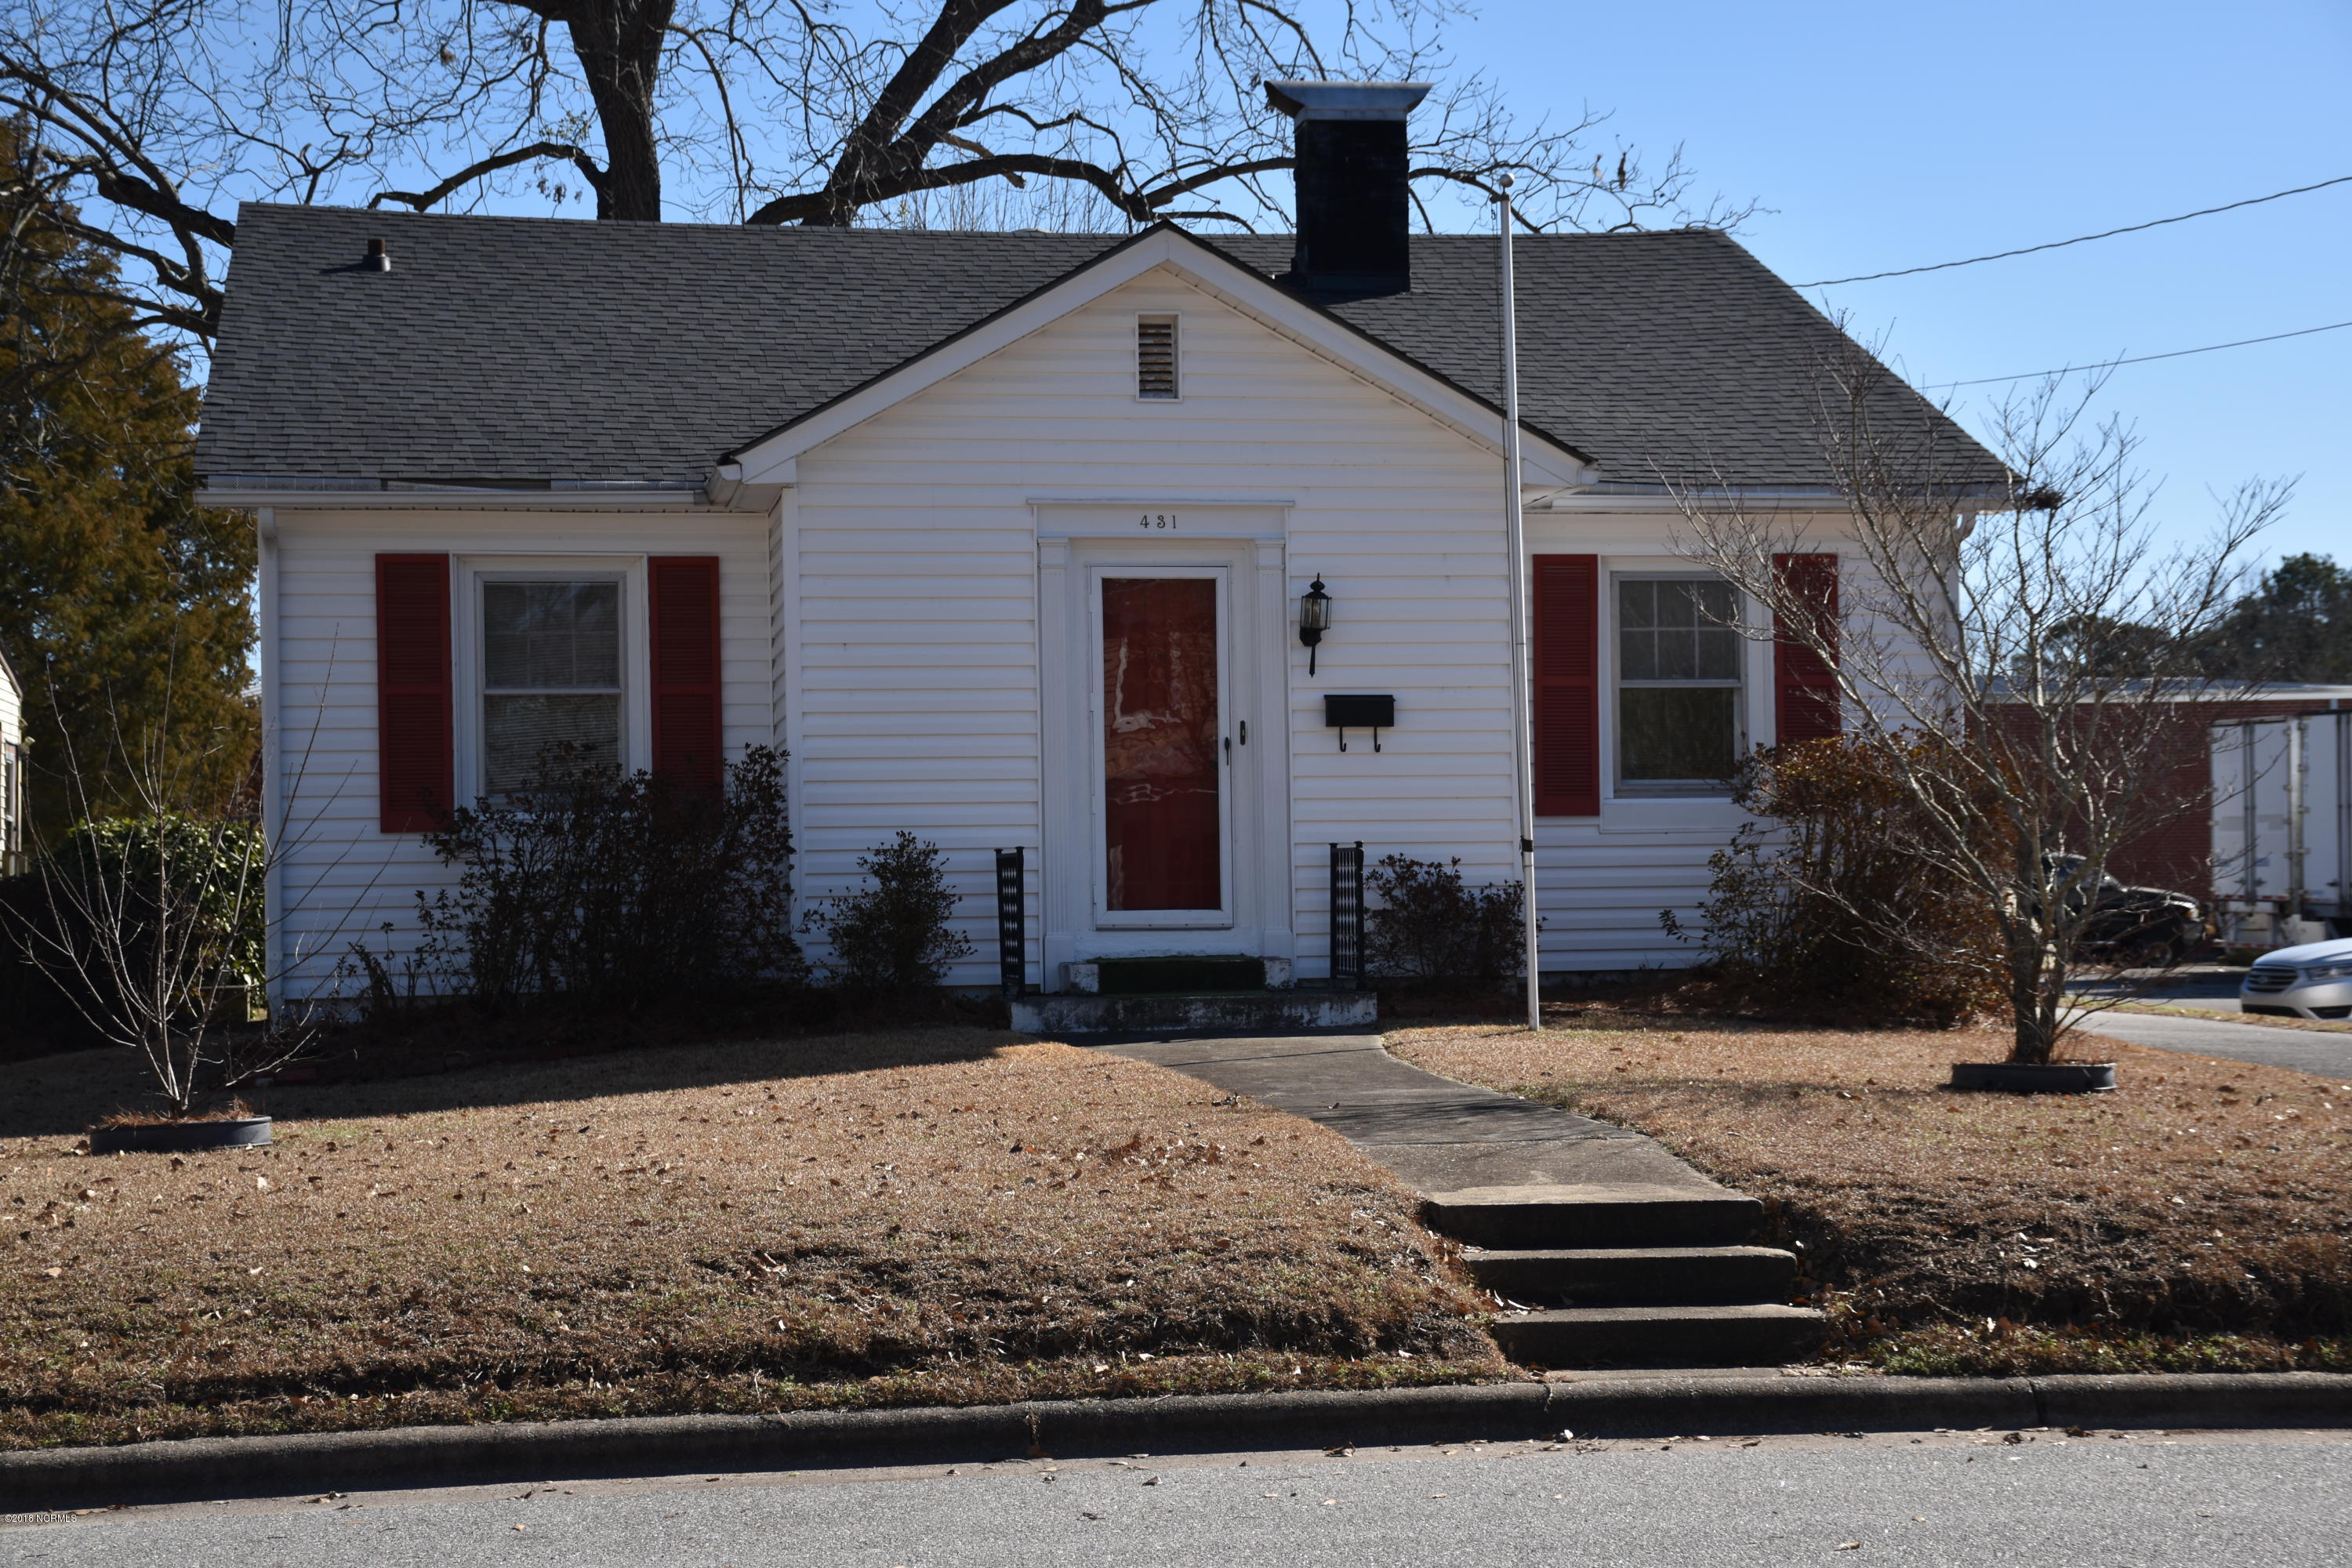 431 Mcnair Street,Washington,North Carolina,2 Bedrooms Bedrooms,5 Rooms Rooms,1 BathroomBathrooms,Single family residence,Mcnair,100097700